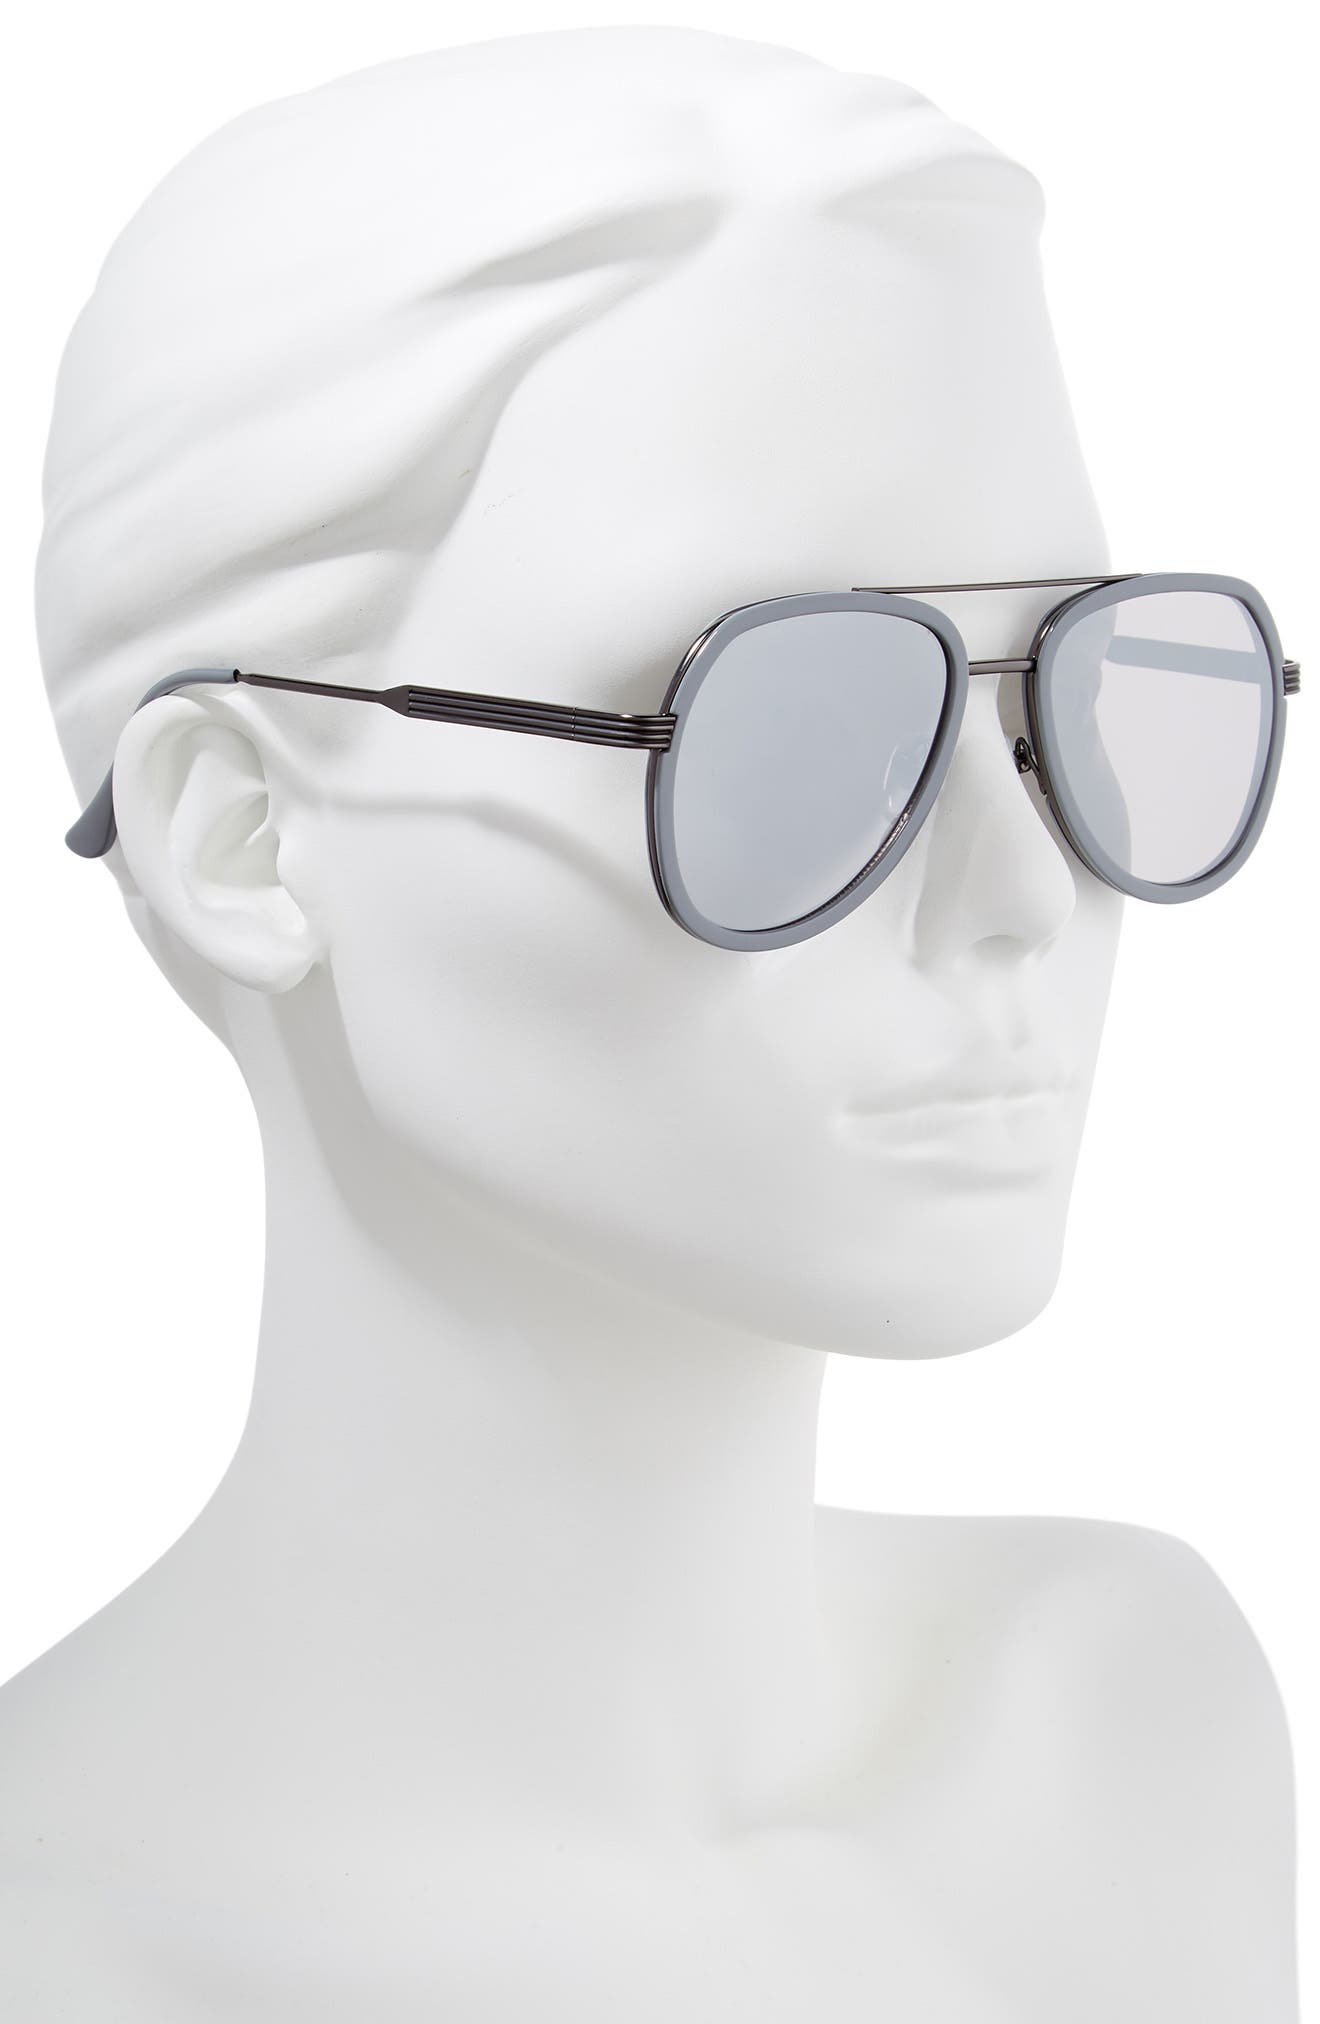 50mm Aviator Sunglasses,                             Alternate thumbnail 2, color,                             GREY